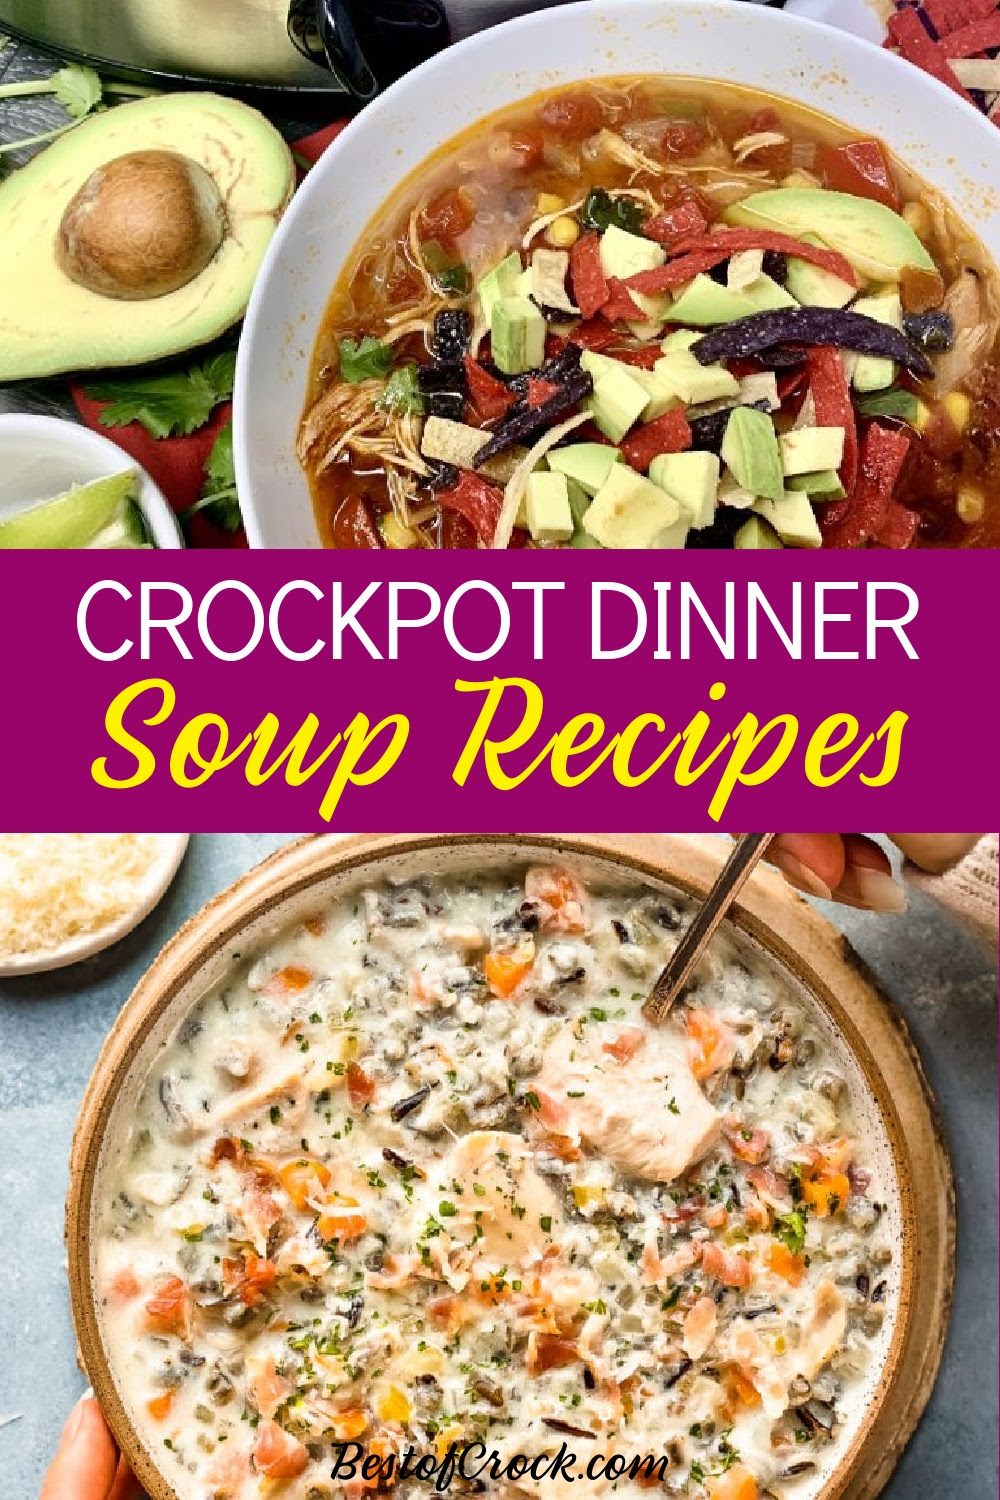 Crockpot soup dinner ideas can vary but they always help with meal planning for the week and result in a delicious bowl of soup each and every time. Slow Cooker Soup Recipes | Crockpot Soup Recipes | Crockpot Soup Recipes with Chicken | Healthy Slow Cooker Soup Recipes | Crockpot Potato Soup | Slow Cooker Beef Soup Recipes | Veggie Soup Recipes #soup #crockpot via @bestofcrock